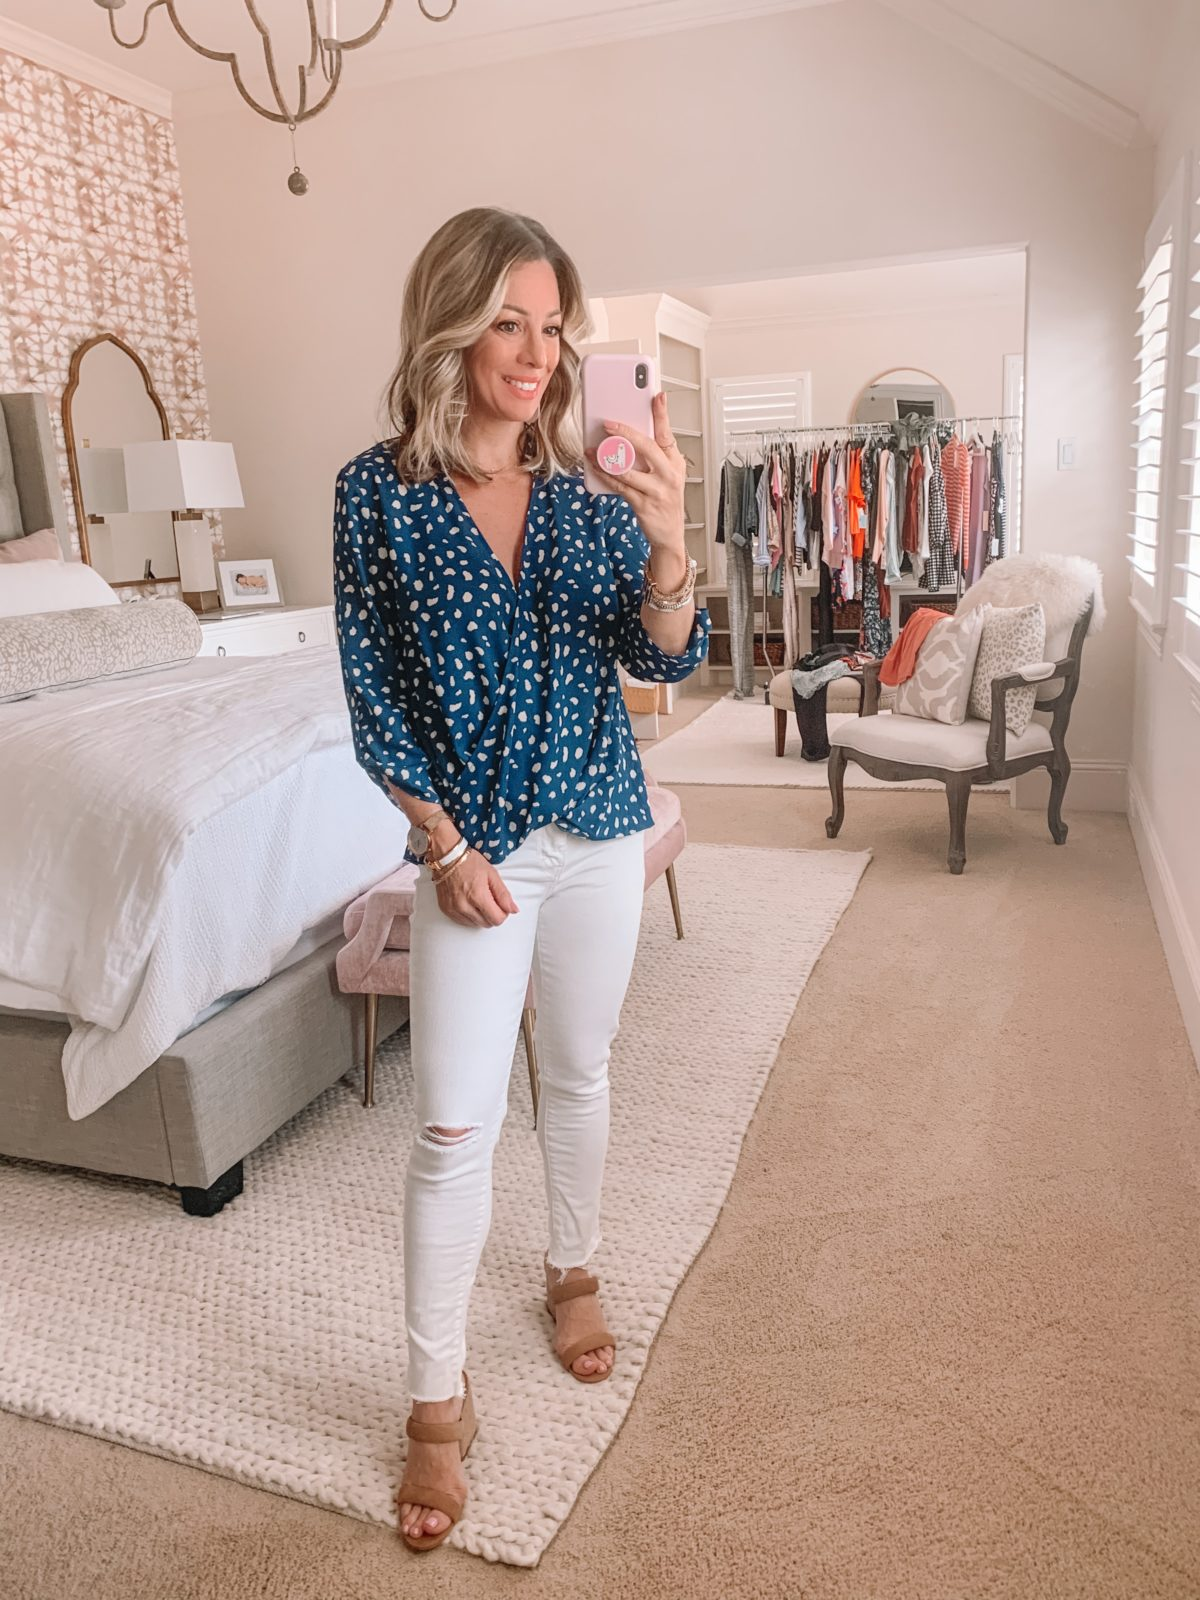 Dressing Room Finds Nordstrom and LOFT, Blue Dot Top, White Jeans, Slide Sandals